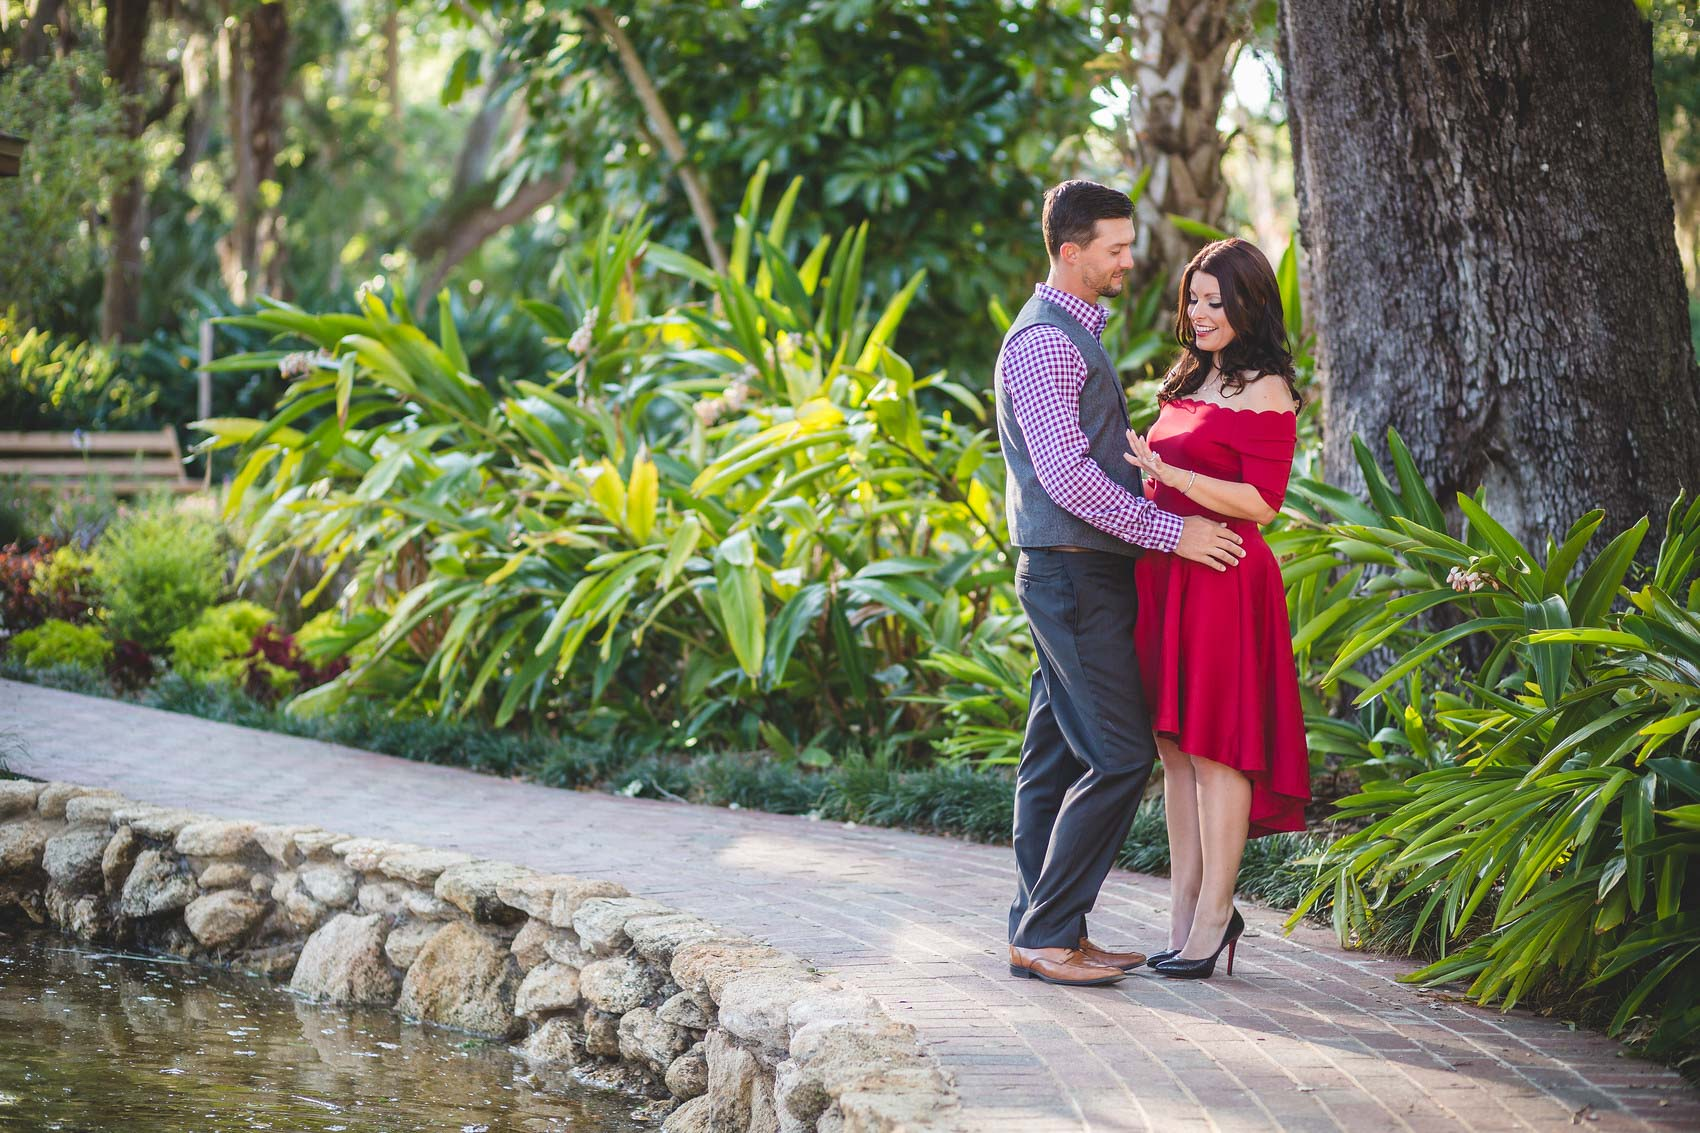 adam-szarmack-jacksonville-wedding-photographer-washington-oaks-gardens-state-park-engagement-2.jpg